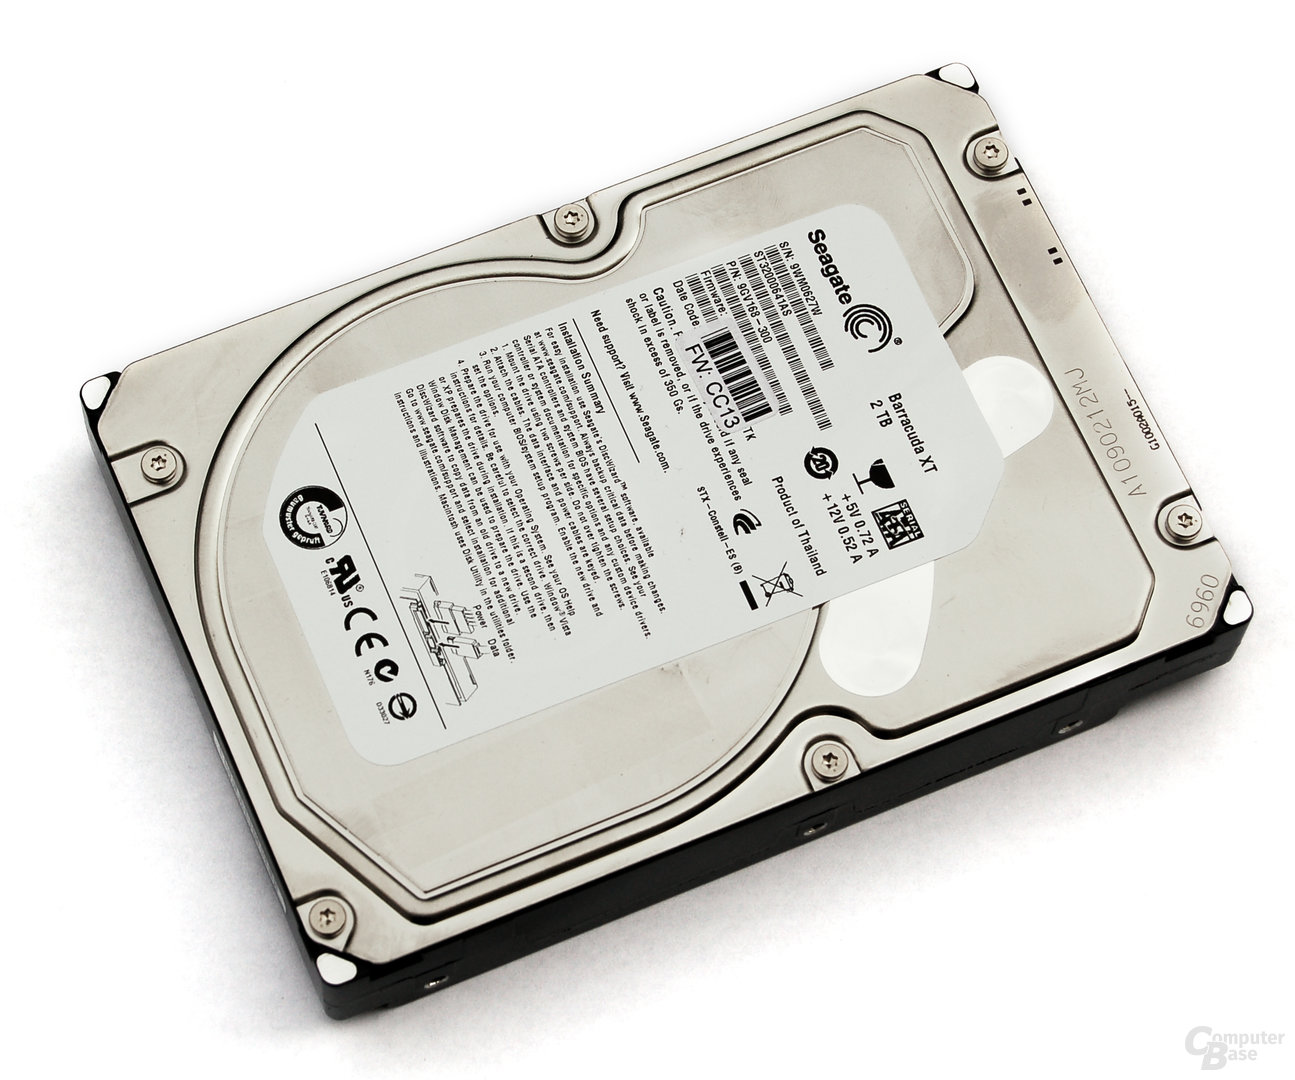 Seagate Barracuda XT